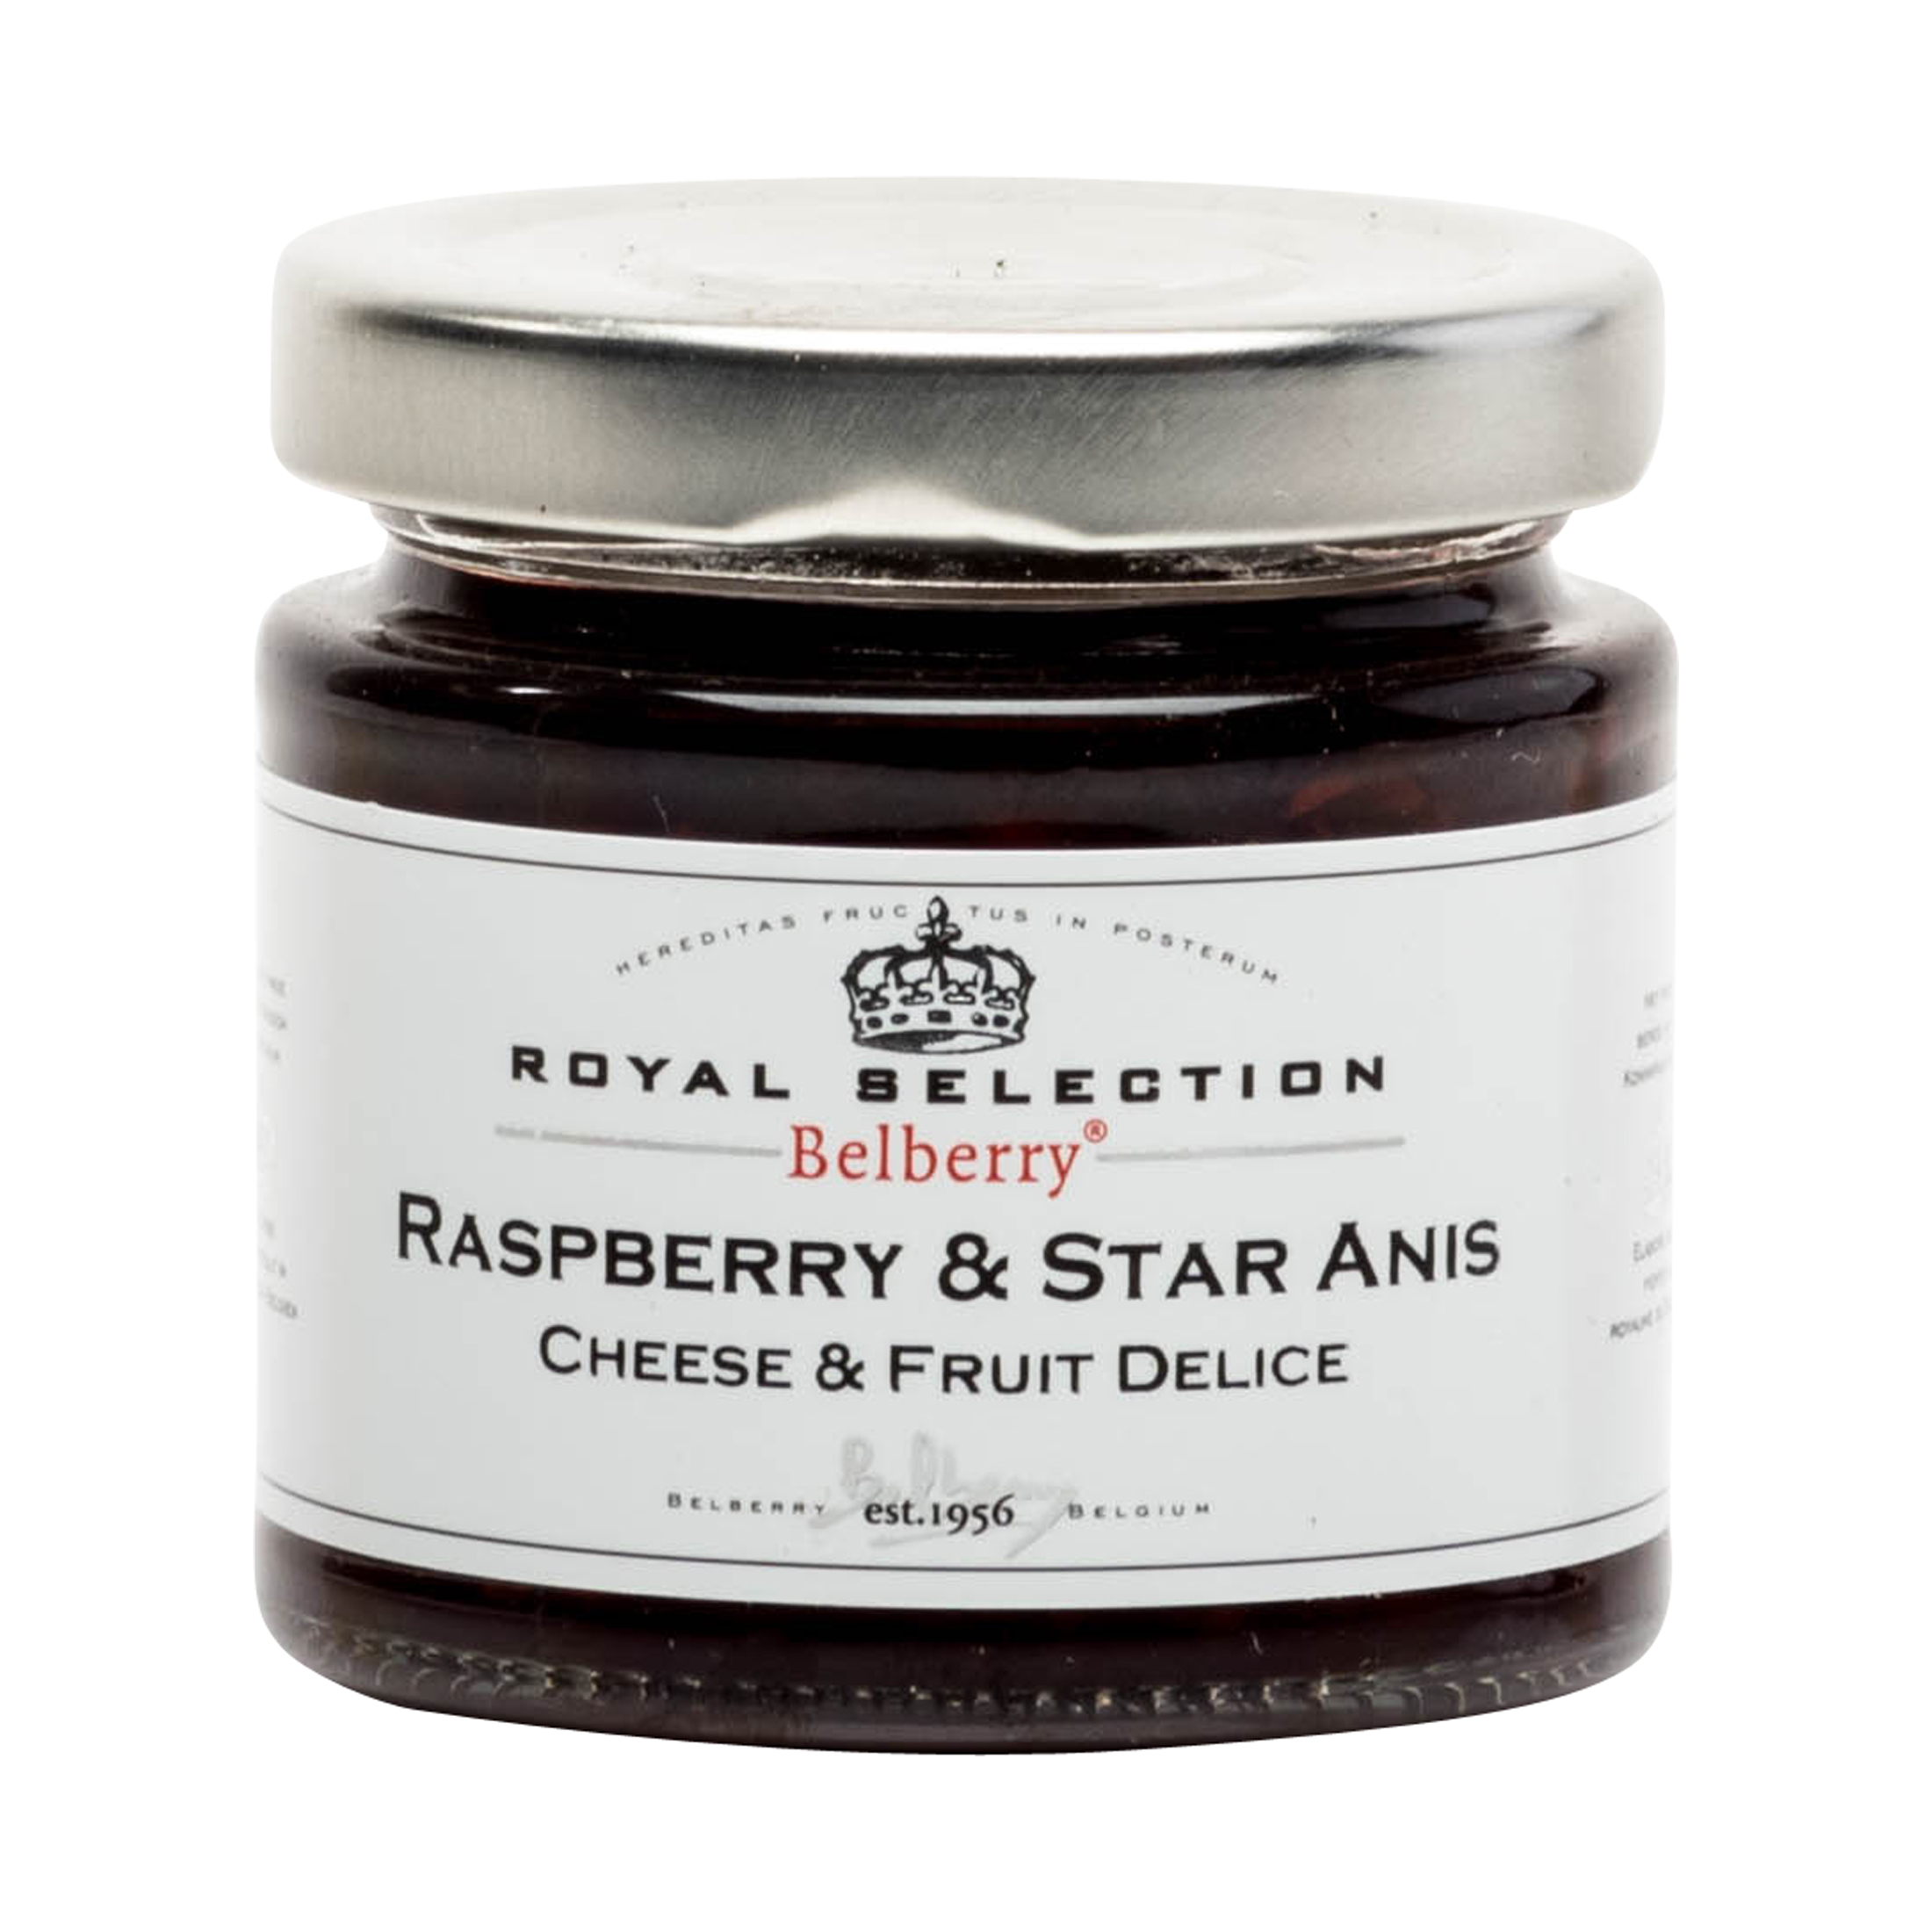 RASPBERRY & STAR ANIS ROYAL SELECTION